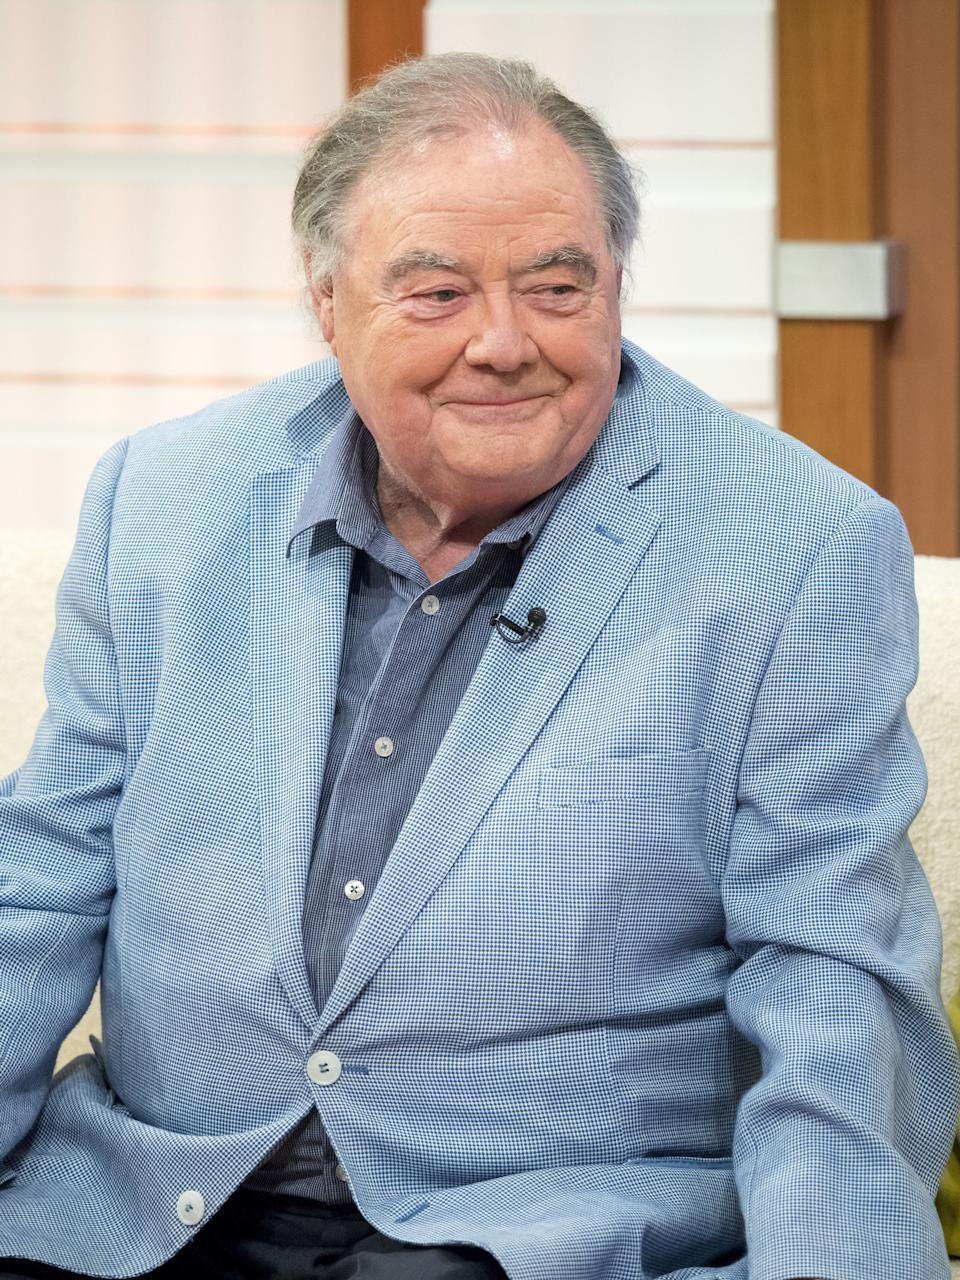 <strong>Eddie Large (1941 - 2020)<br /><br /></strong>Better known as one half of the comedy duo Little and Large, Eddie died at the age of 78, after contracting coronavirus while in hospital.